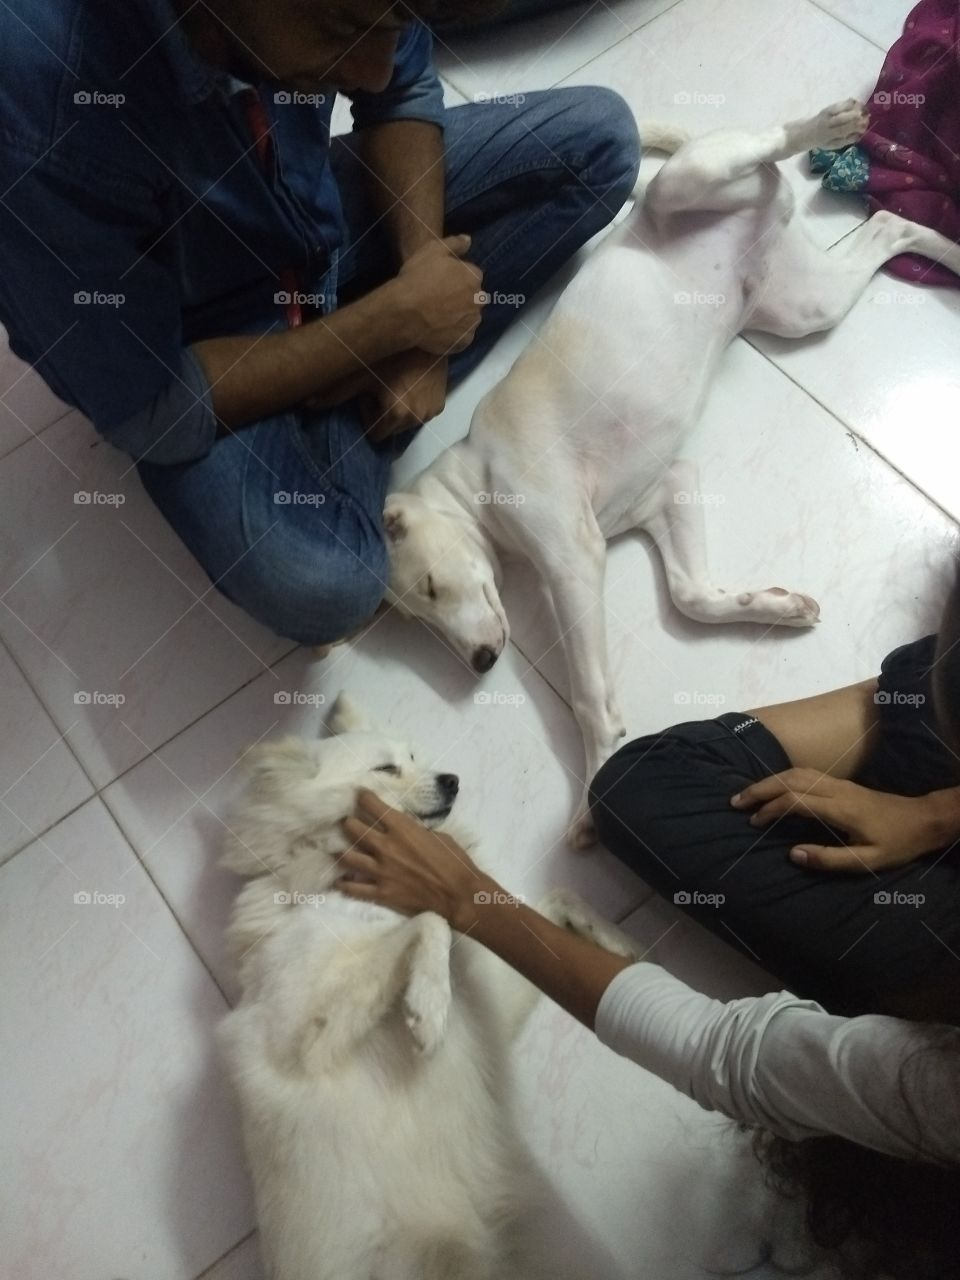 they feel secure with us, pets are like family